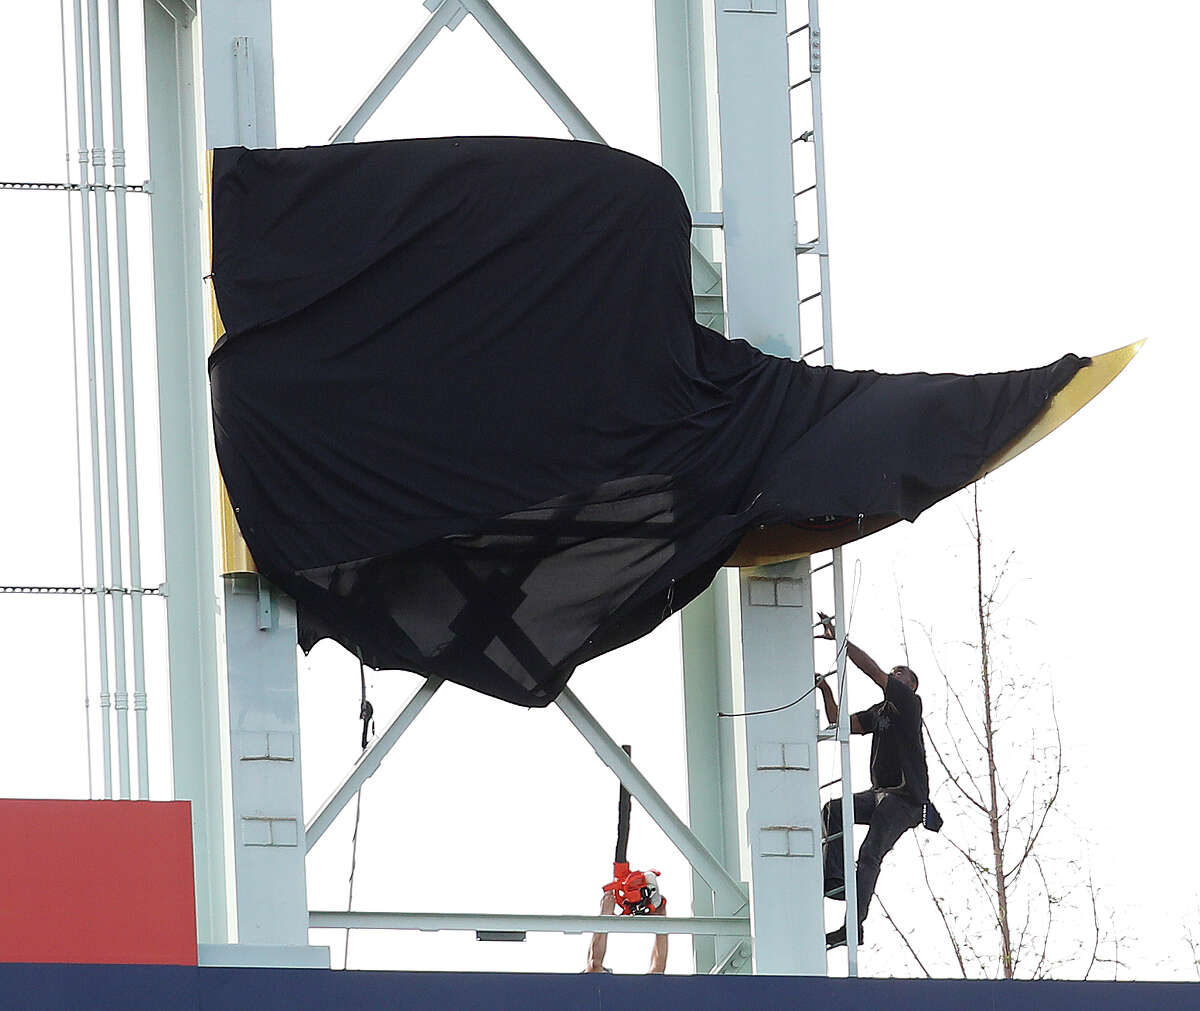 PHOTOS: A look at the World Series banner unveiling A worker shimmies up the ladder to free the tarp off the World Series penant during the pre-game ceremony before the start of the home opener during an MLB baseball game at Minute Maid Park, Monday, April 2, 2018, in Houston. Browse through the photos for a look at the World Series banner unveiling and all the other pregame festivities.